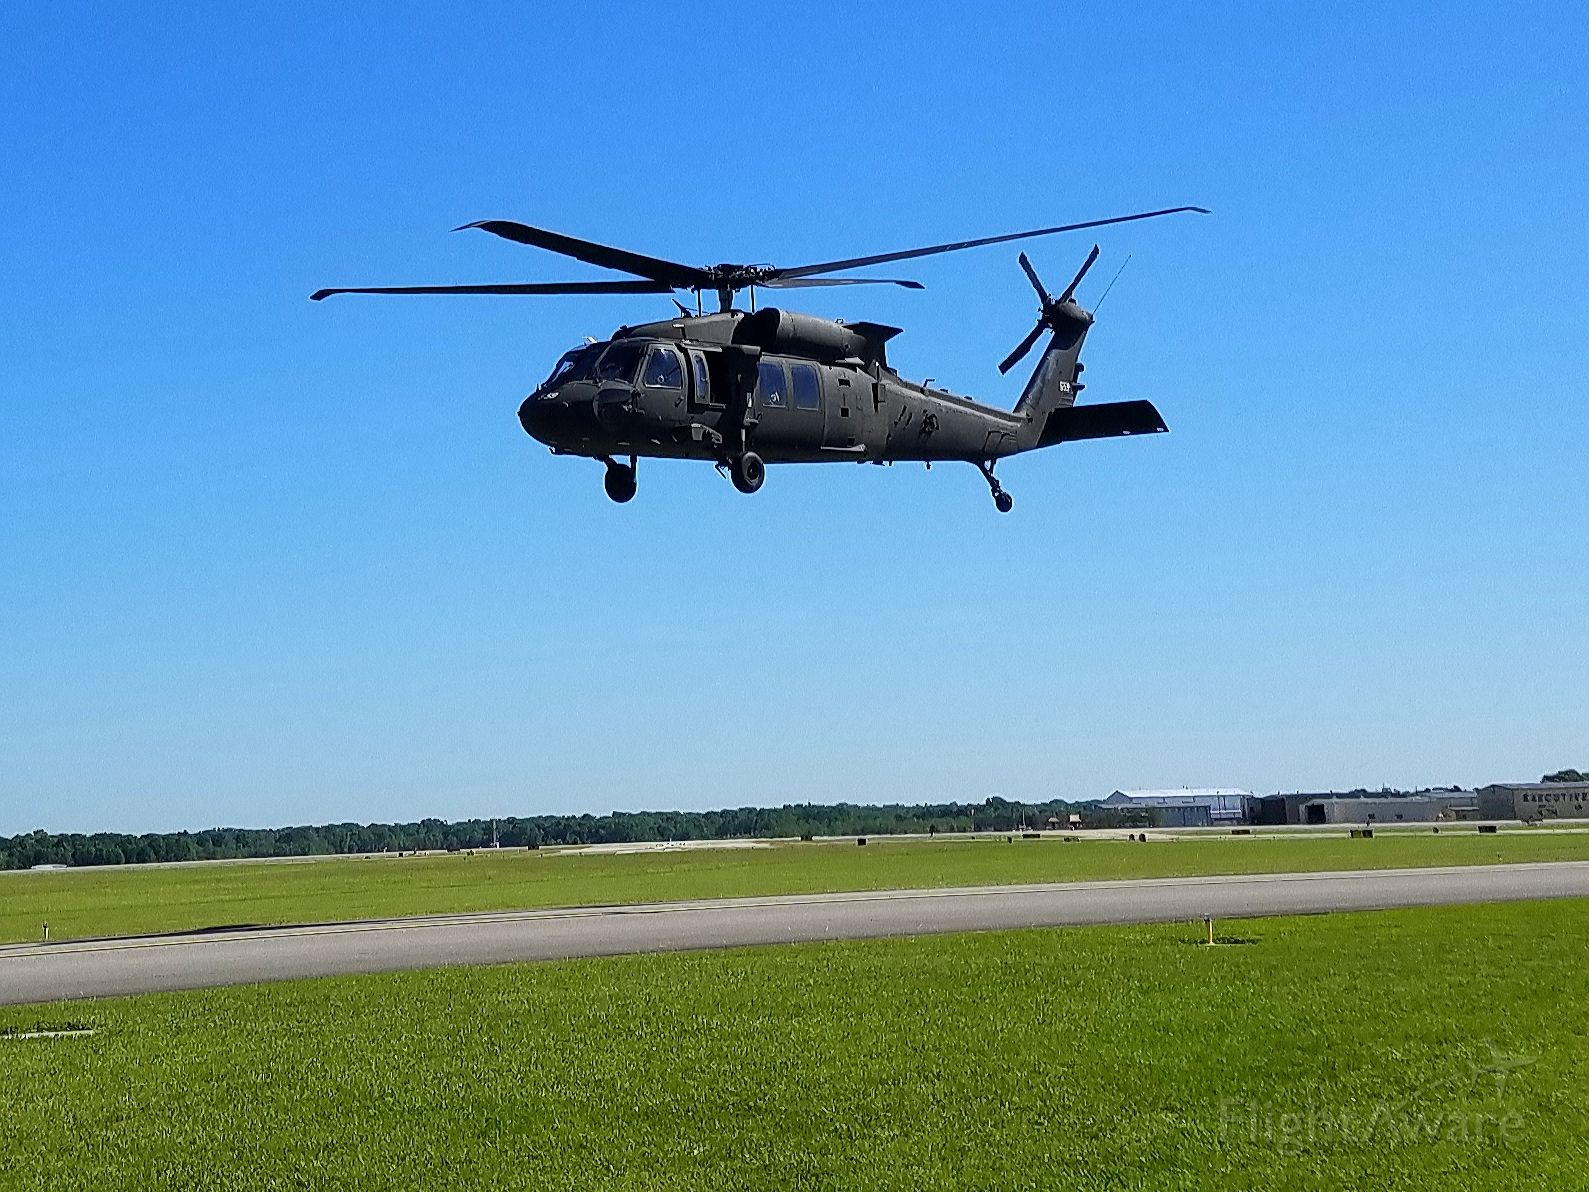 — — - I had just tied down a C172 at Baton Rouge and this helicopter was taking off on the taxiway.